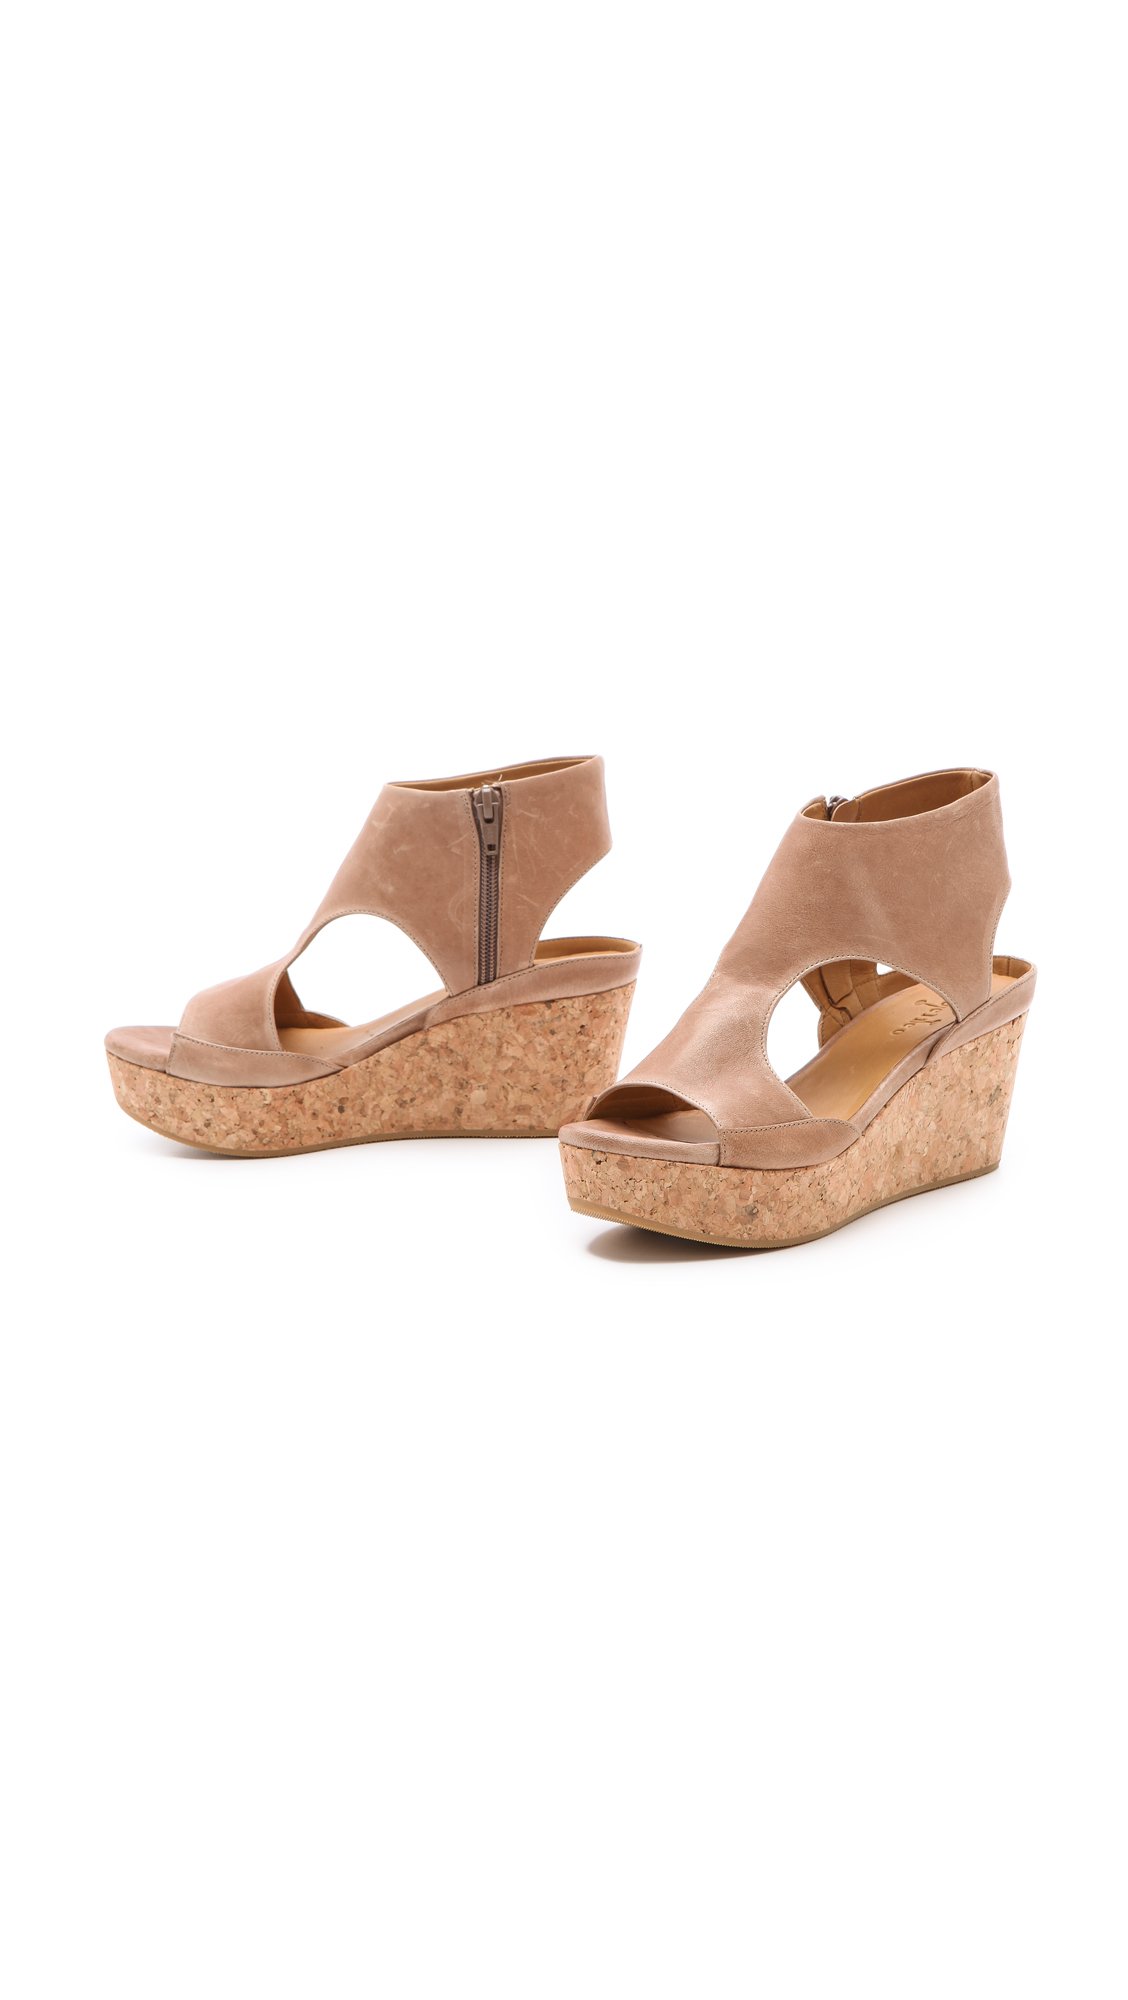 41c18ed4f39 Lyst - Coclico Mosaic Cork Wedge Sandals in Natural